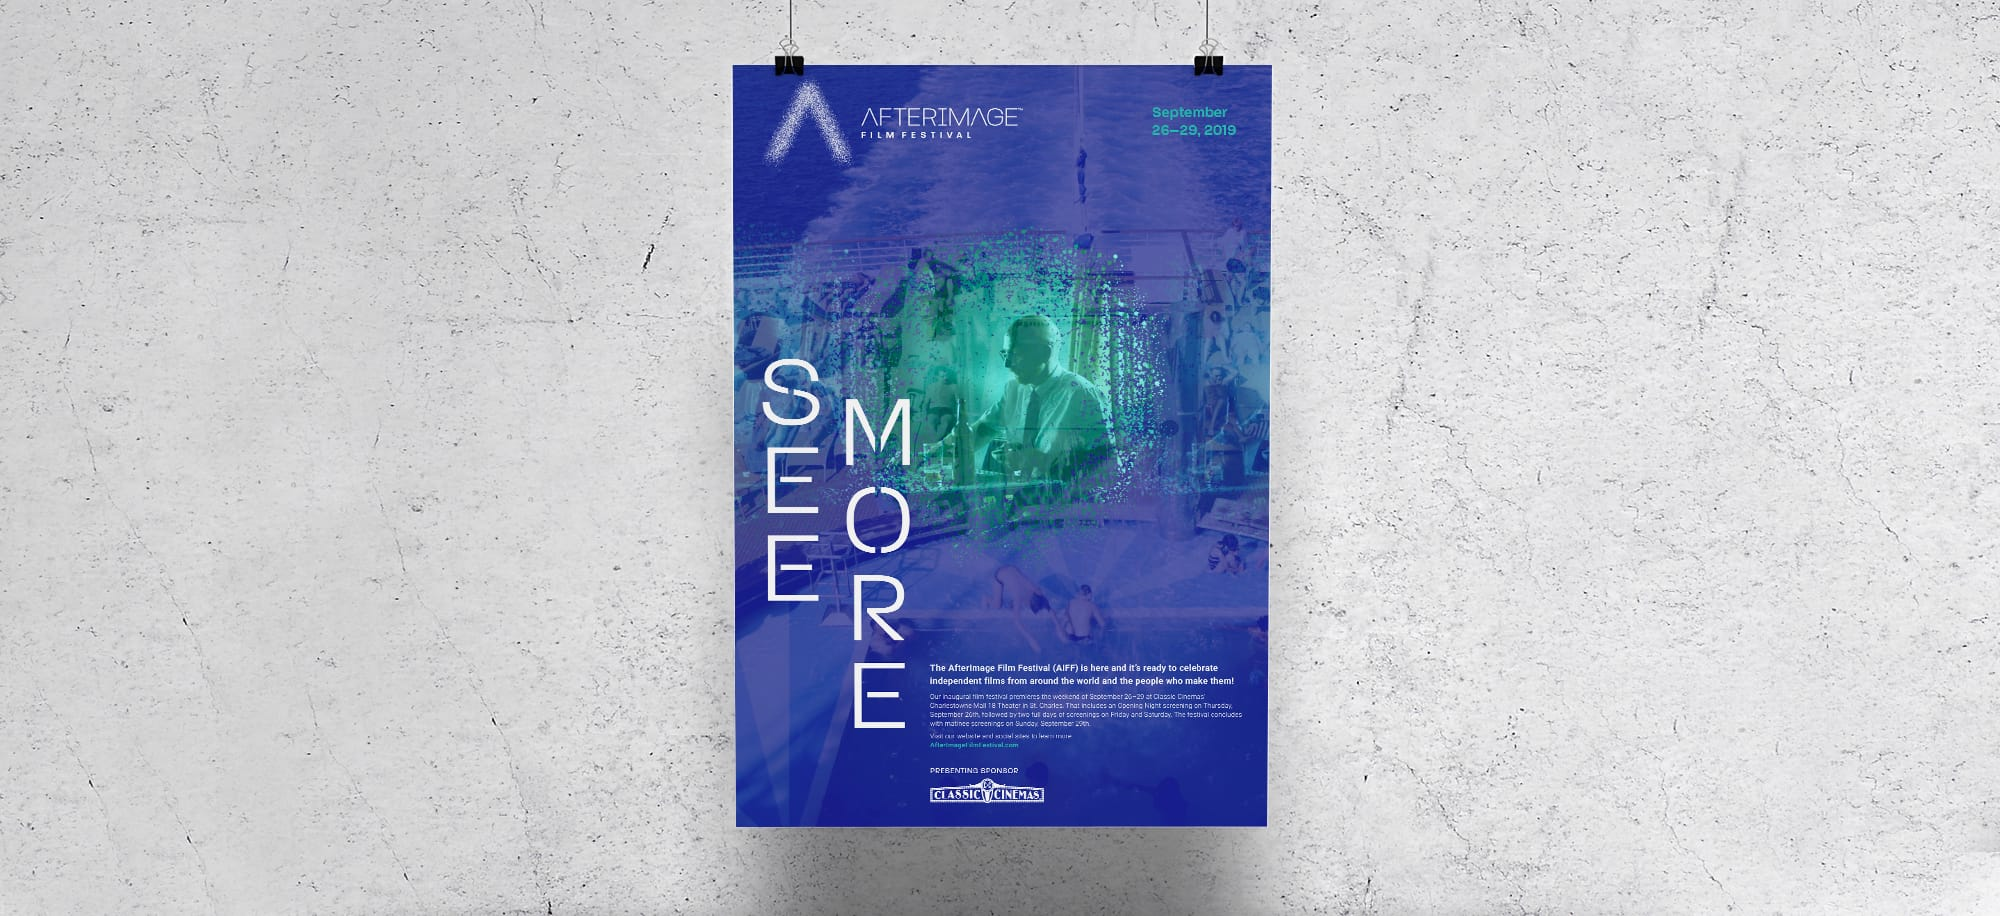 After Image Movie Poster